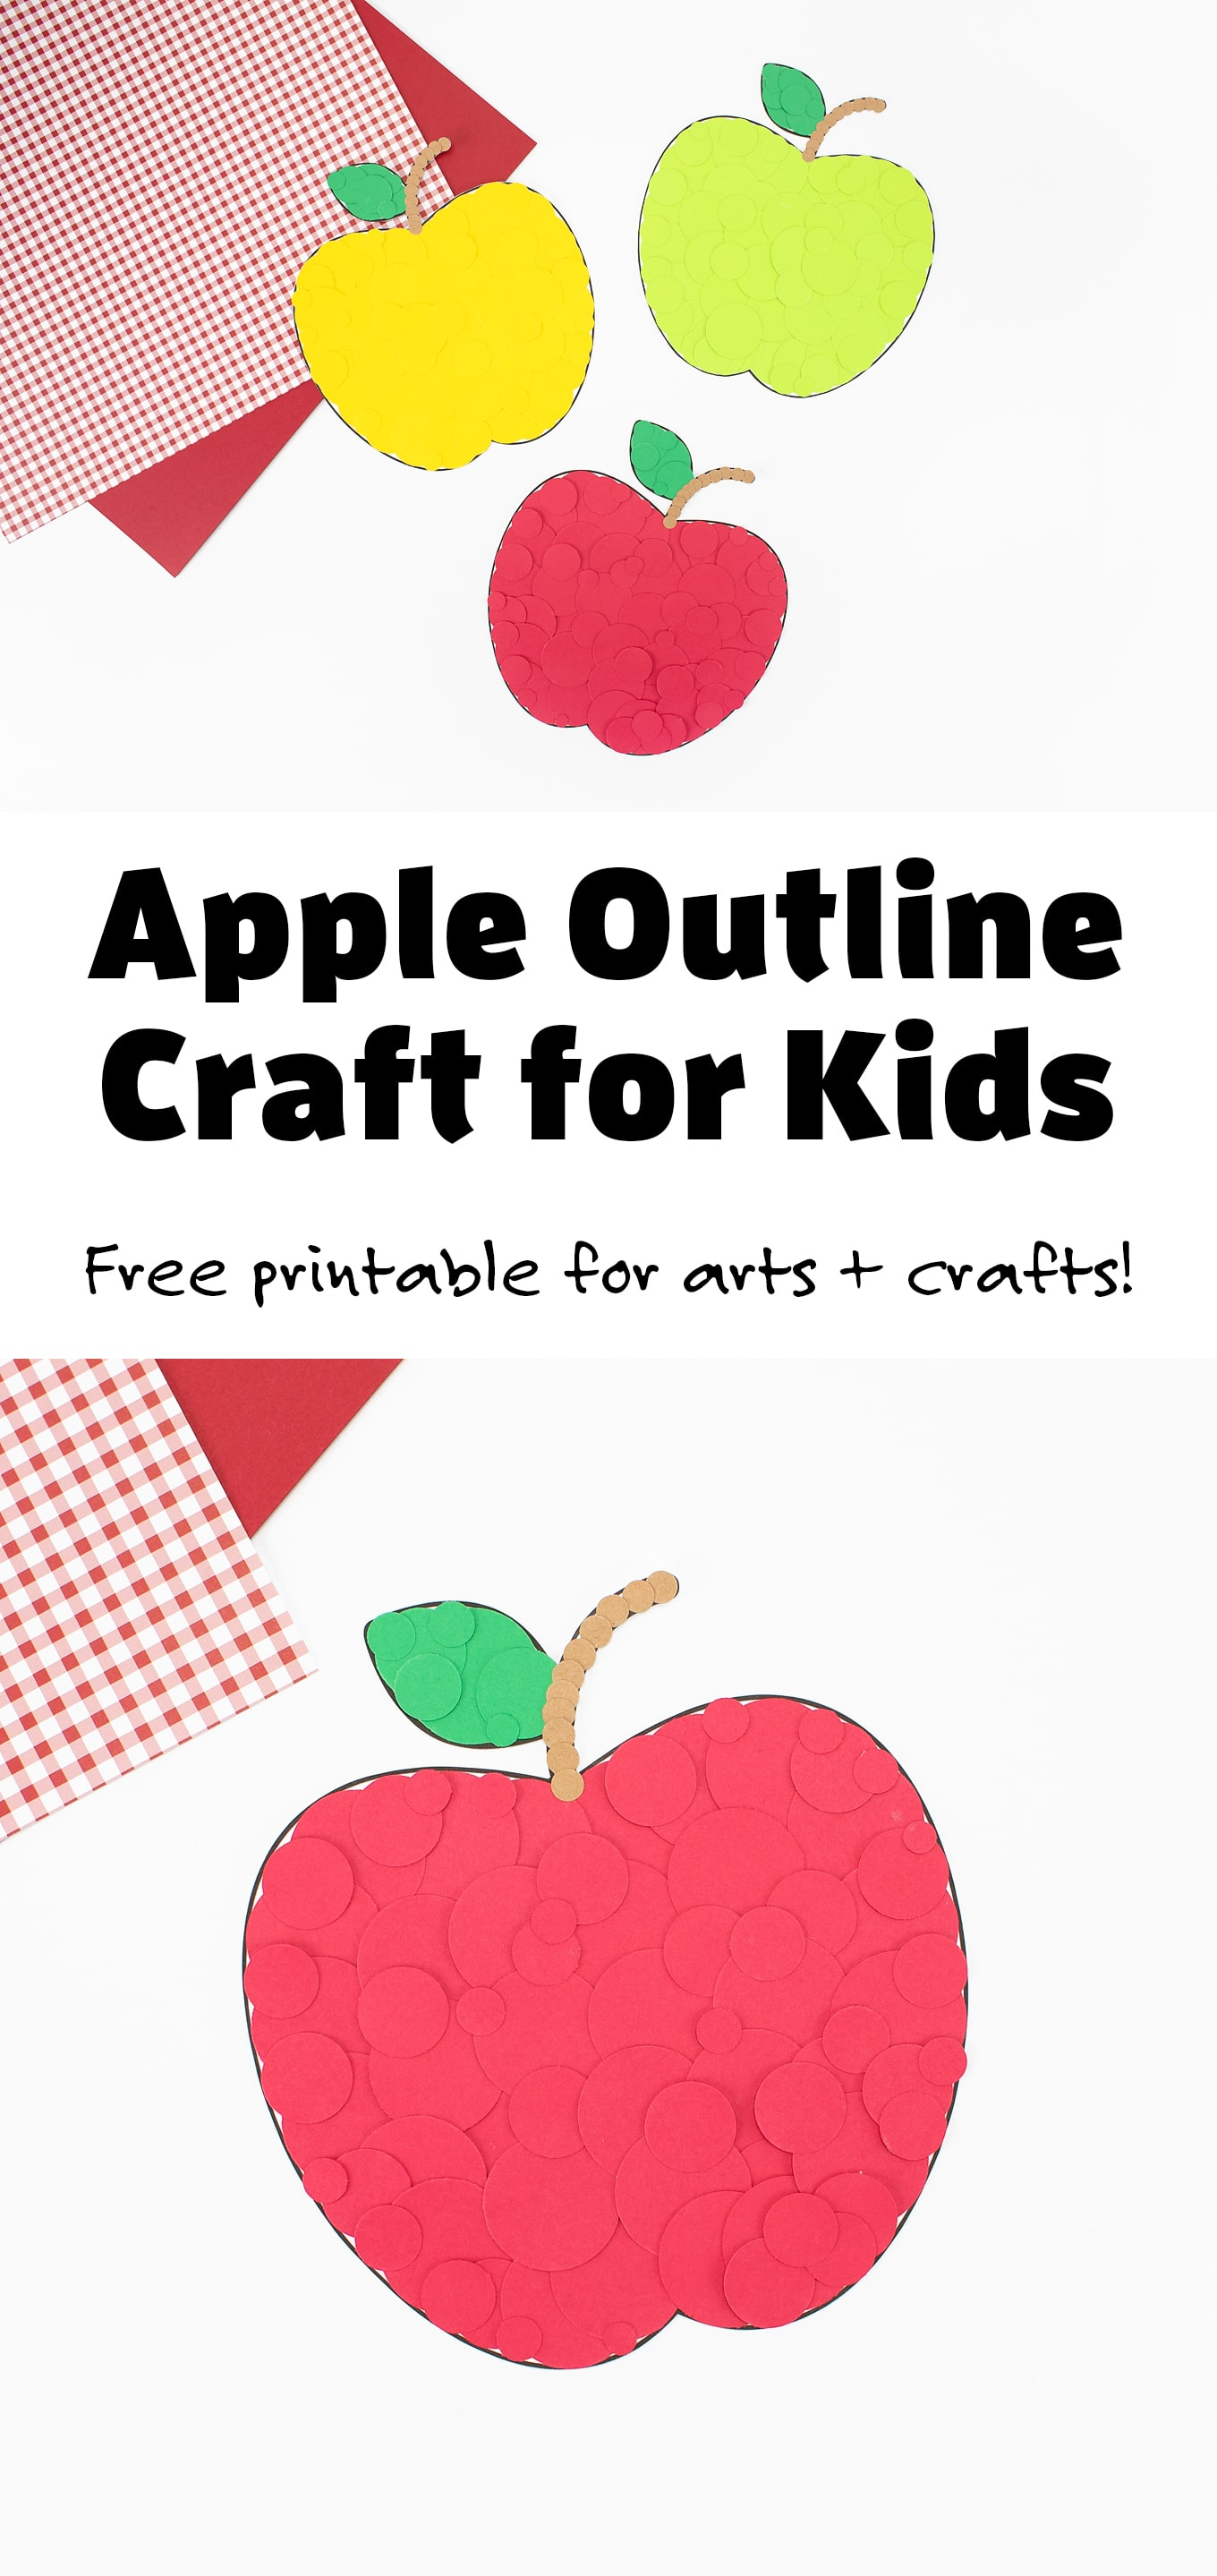 Kids of all ages will love using our free printable apple outline to make a variety of easy apple crafts and decorations for fall! #appleoutline #appletemplate #applepattern #preschool #fallcrafts #applecrafts via @firefliesandmudpies